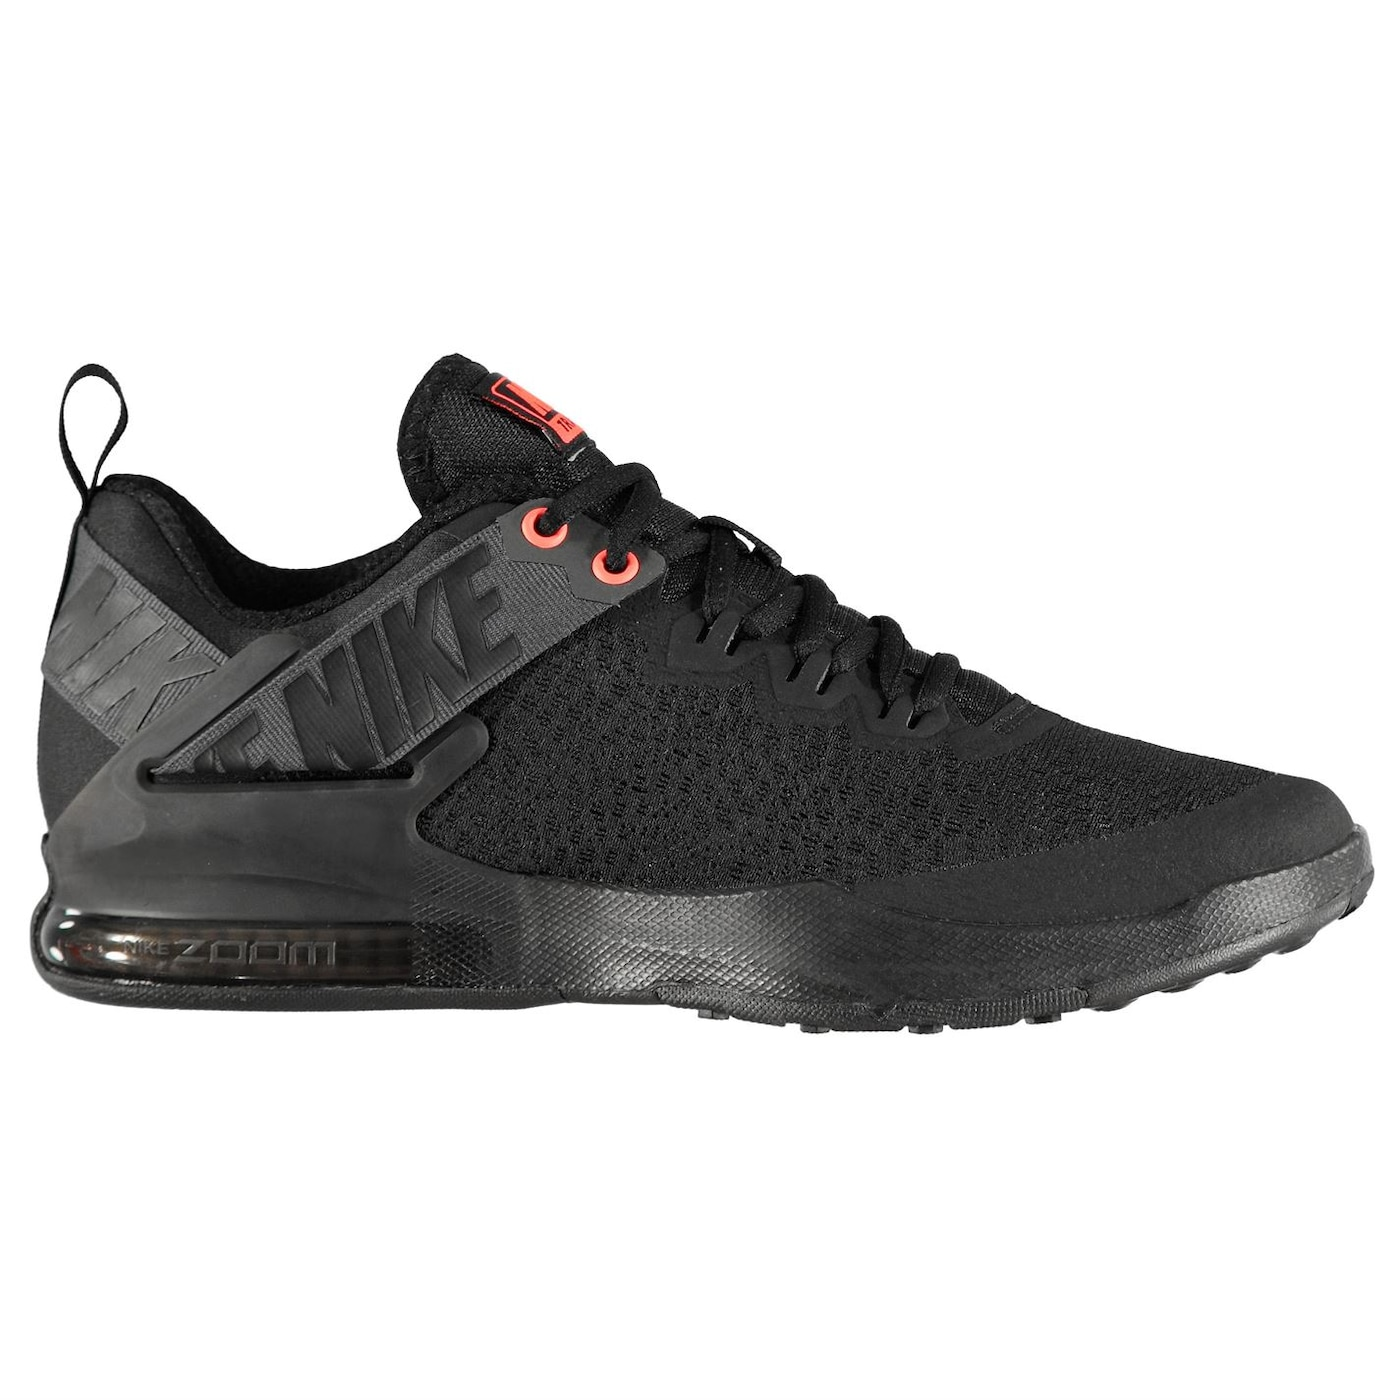 Nike Zoom Domination 2 Mens Training Shoes